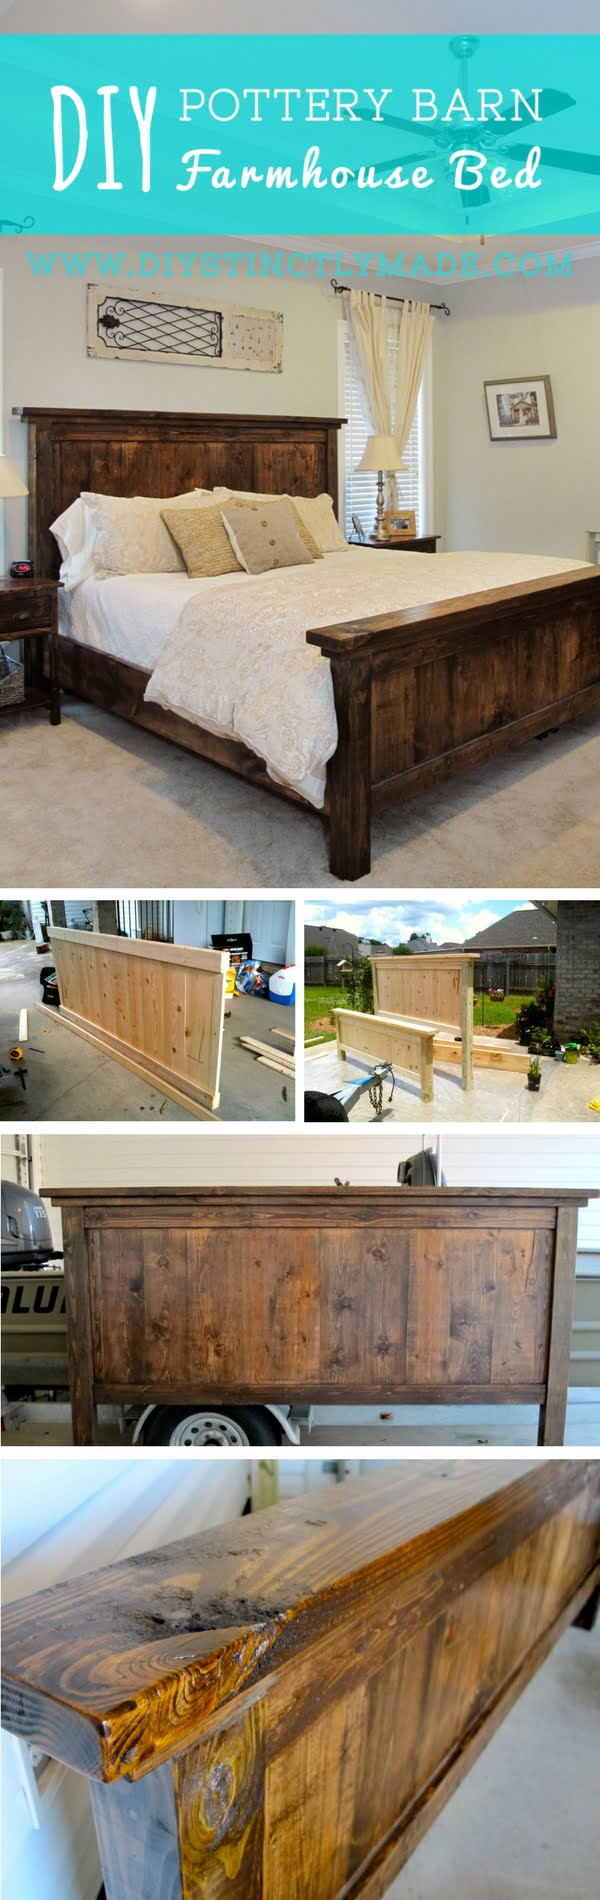 45 Easy DIY Bed Frame Projects You Can Build on a Budget - Check out how to build a DIY Pottery Barn inspired farmhouse bed